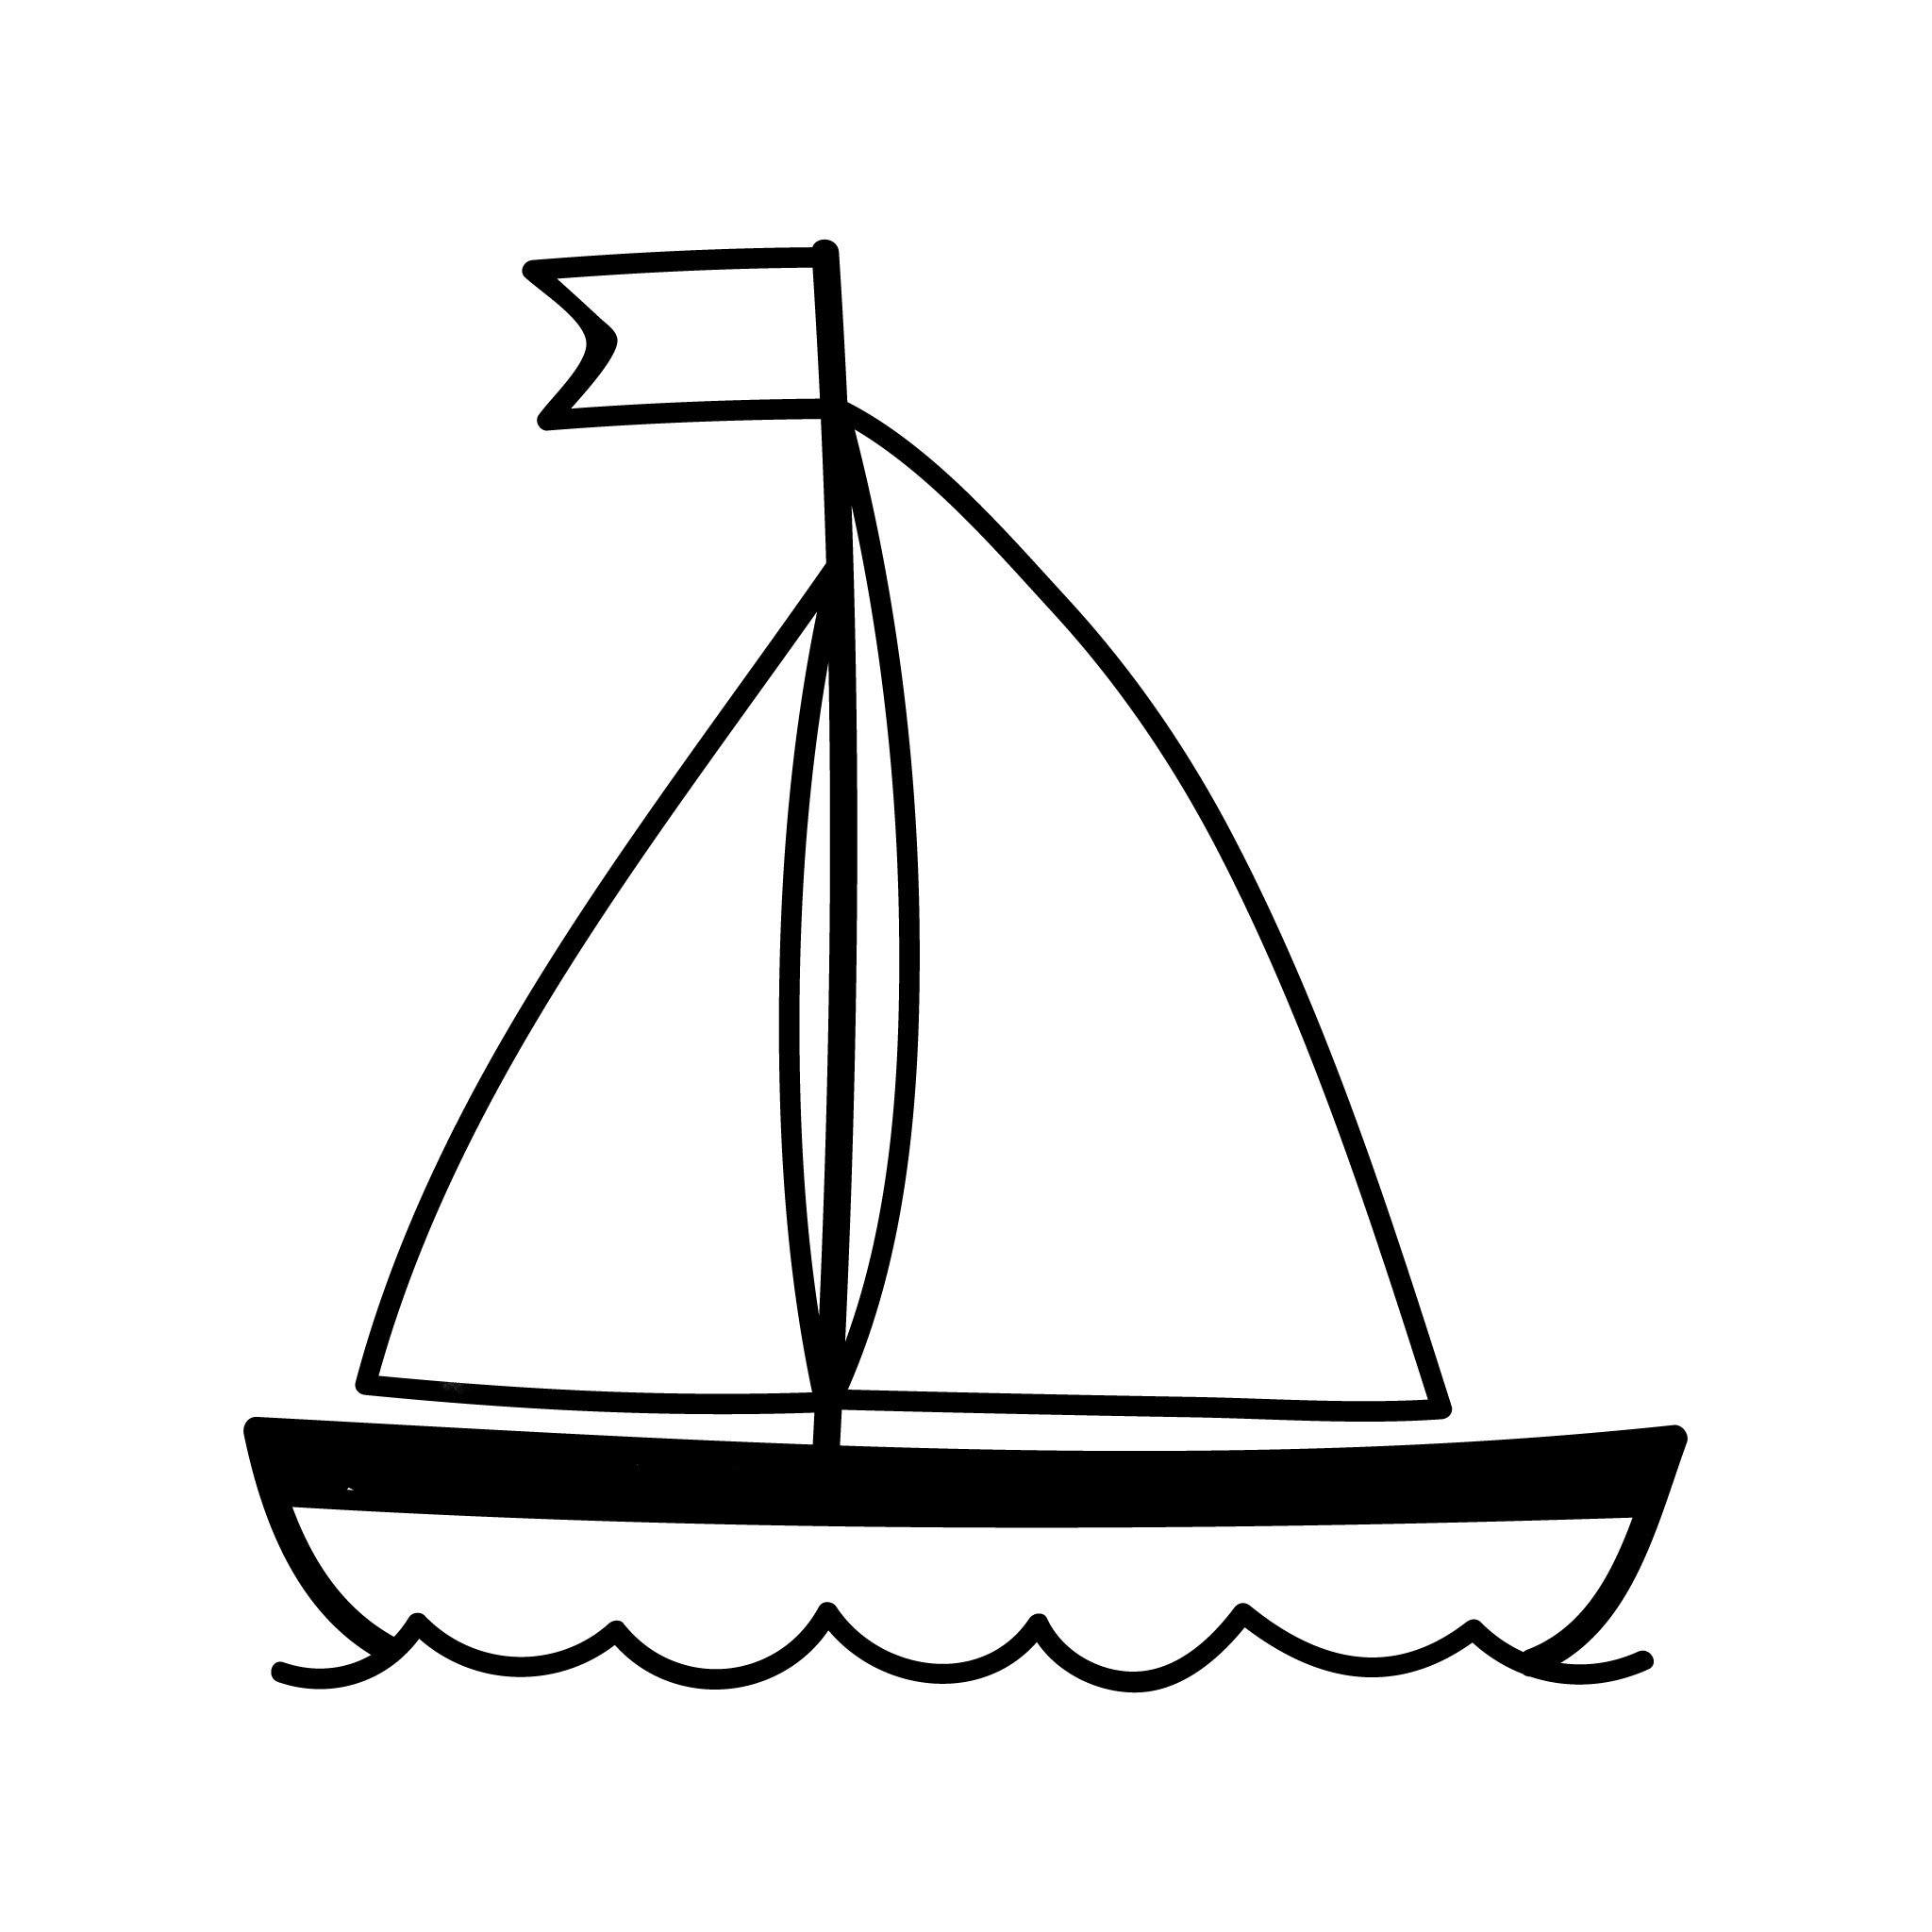 Boat Temporary Tatoo Design. Tags: Black and White, Minimal, Traditional,